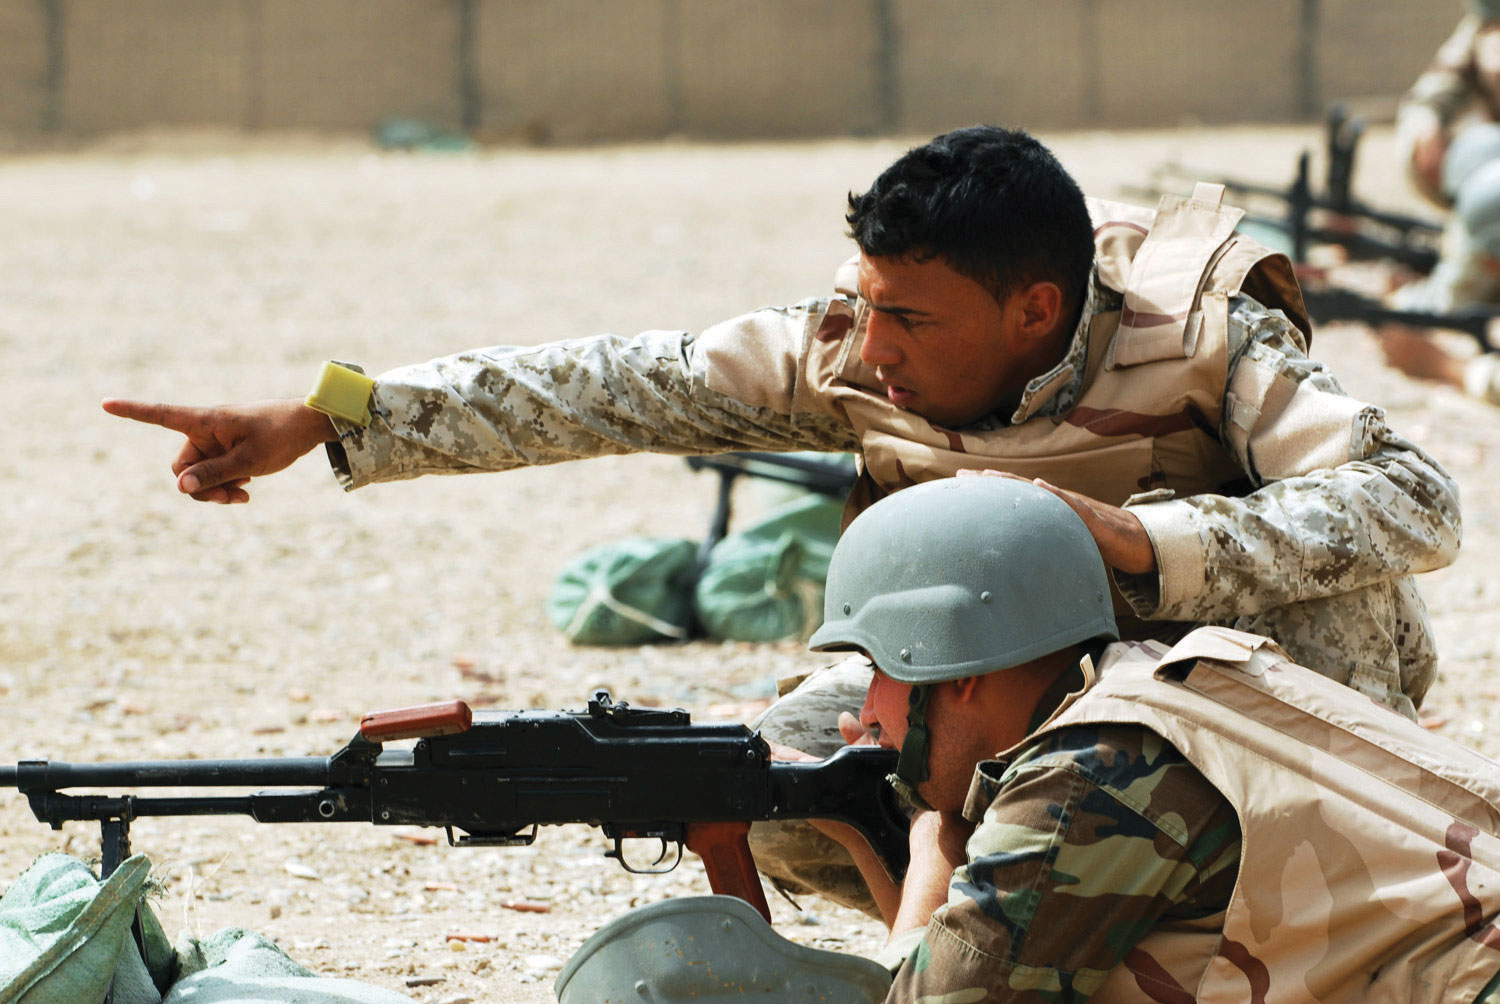 Soldiers doing some target practice in the prone position